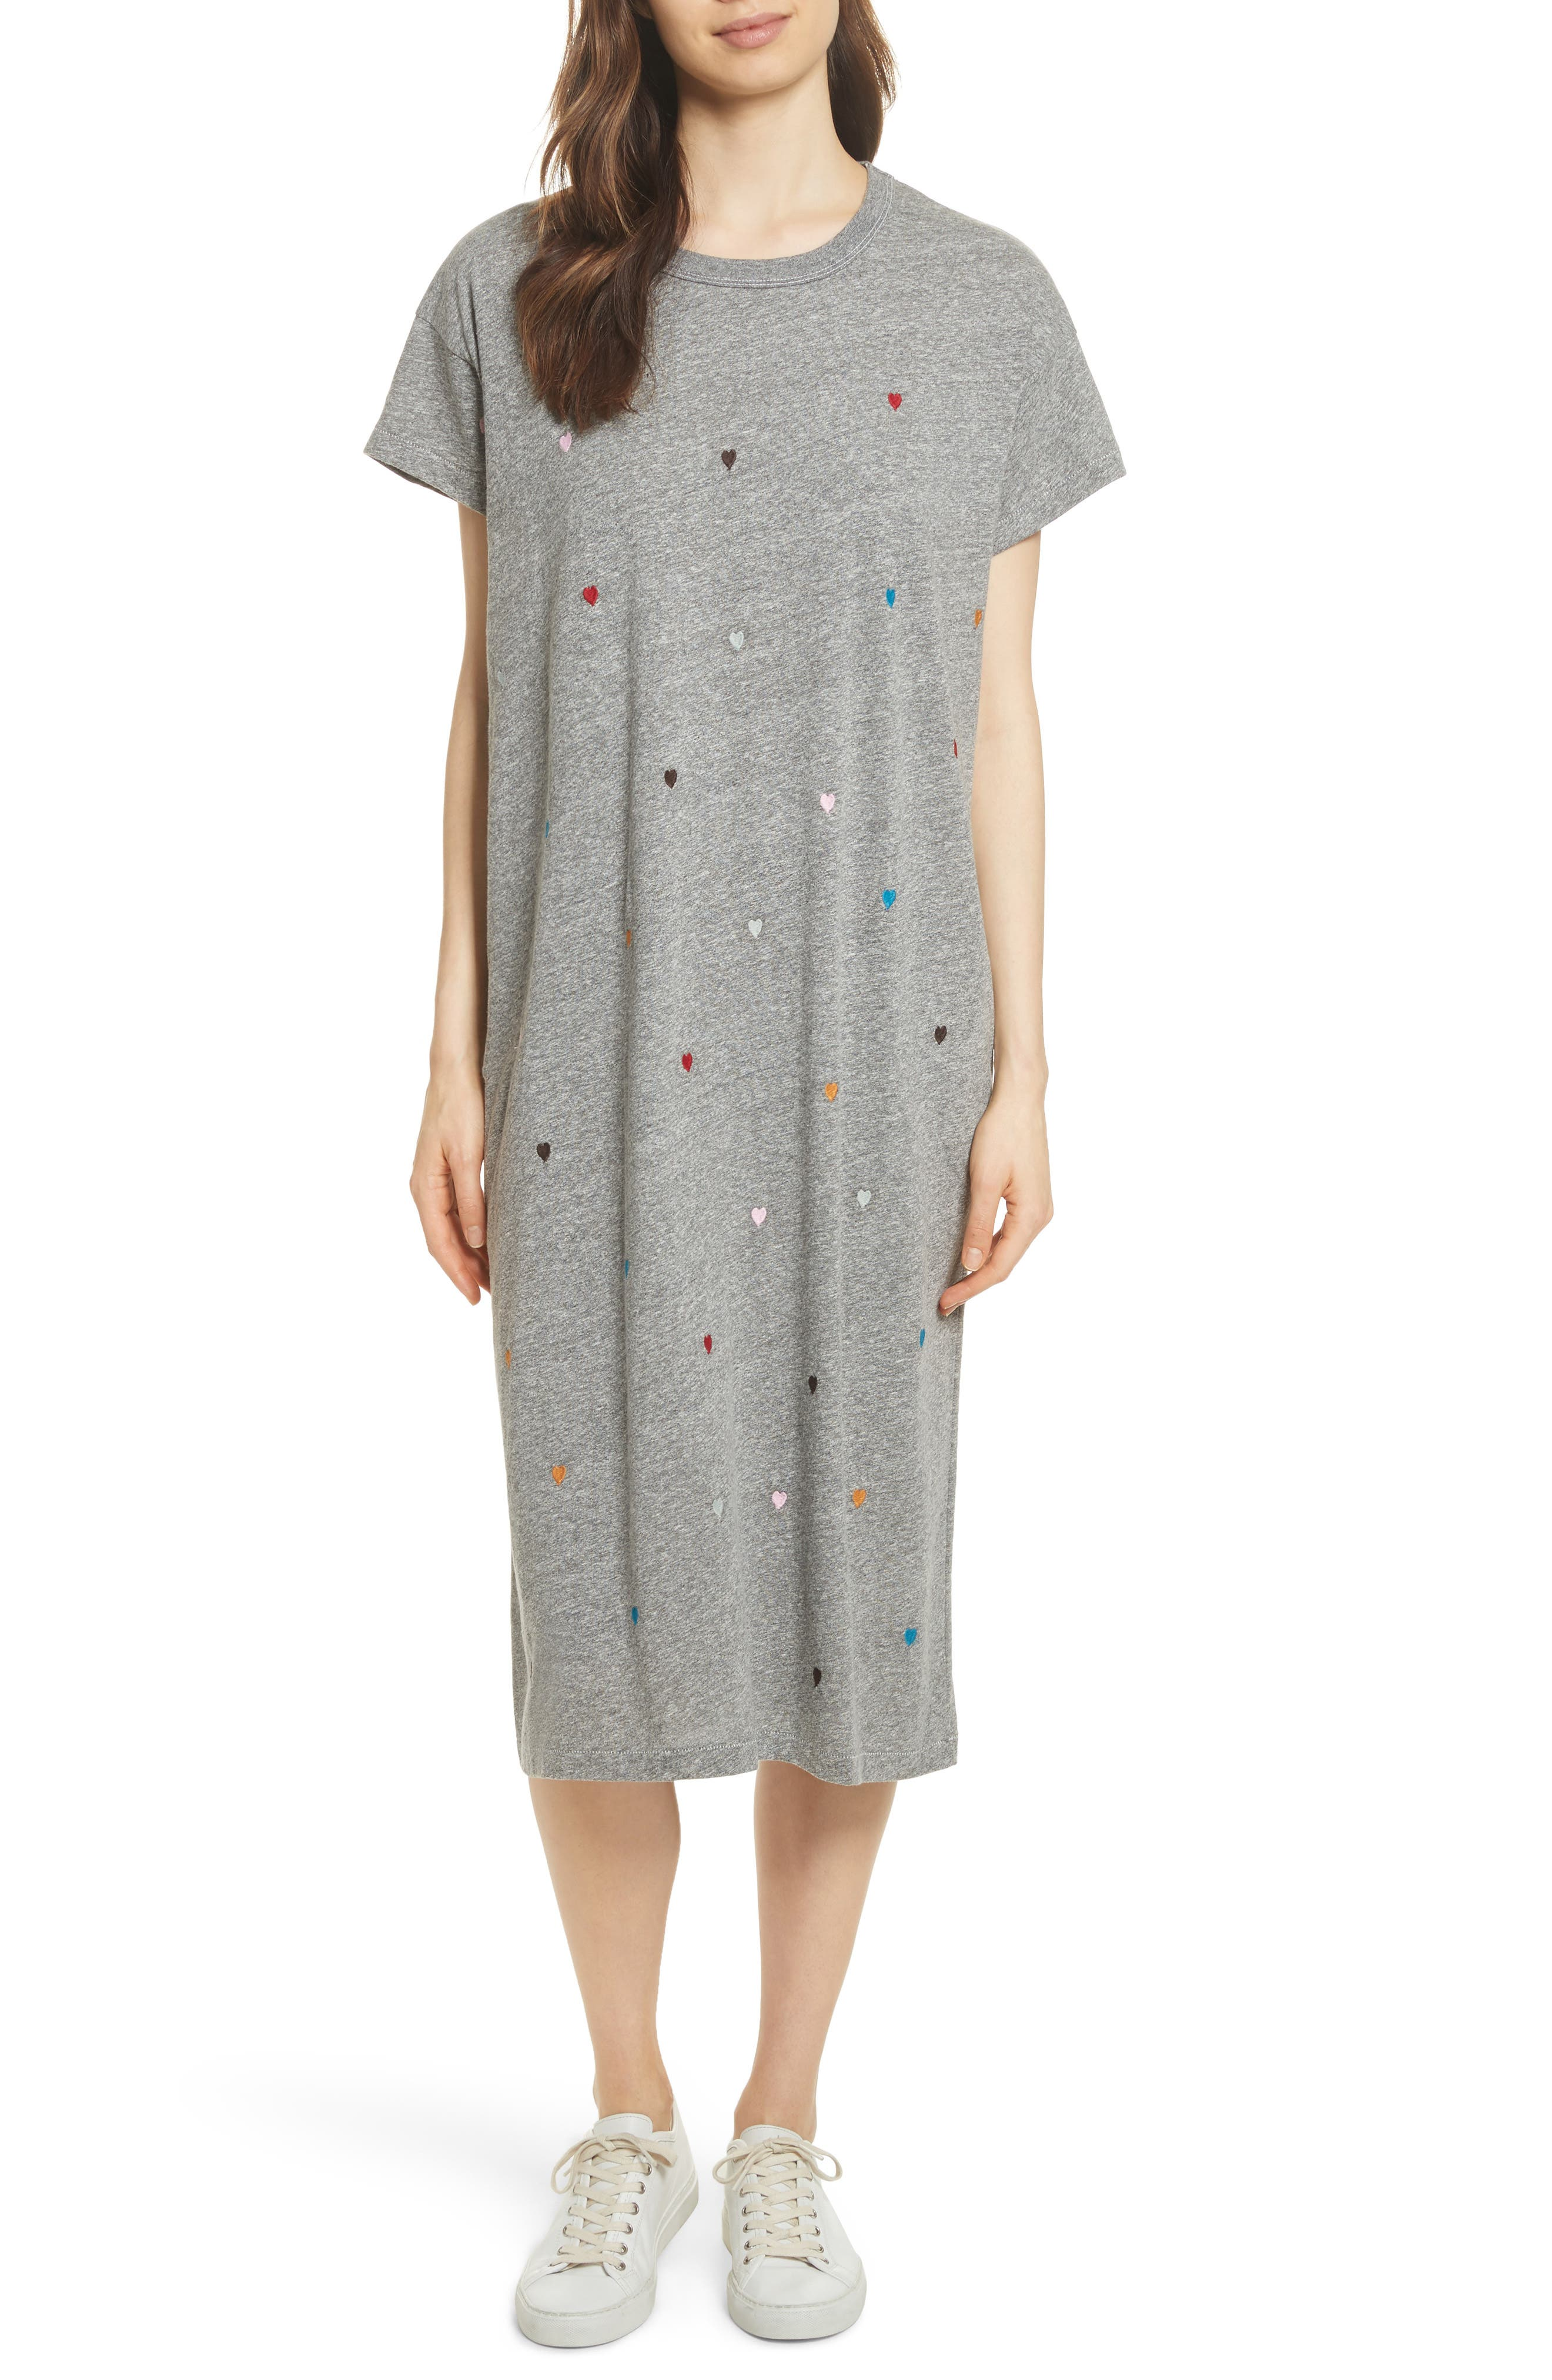 THE GREAT. The Boxy Embroidered T-Shirt Dress